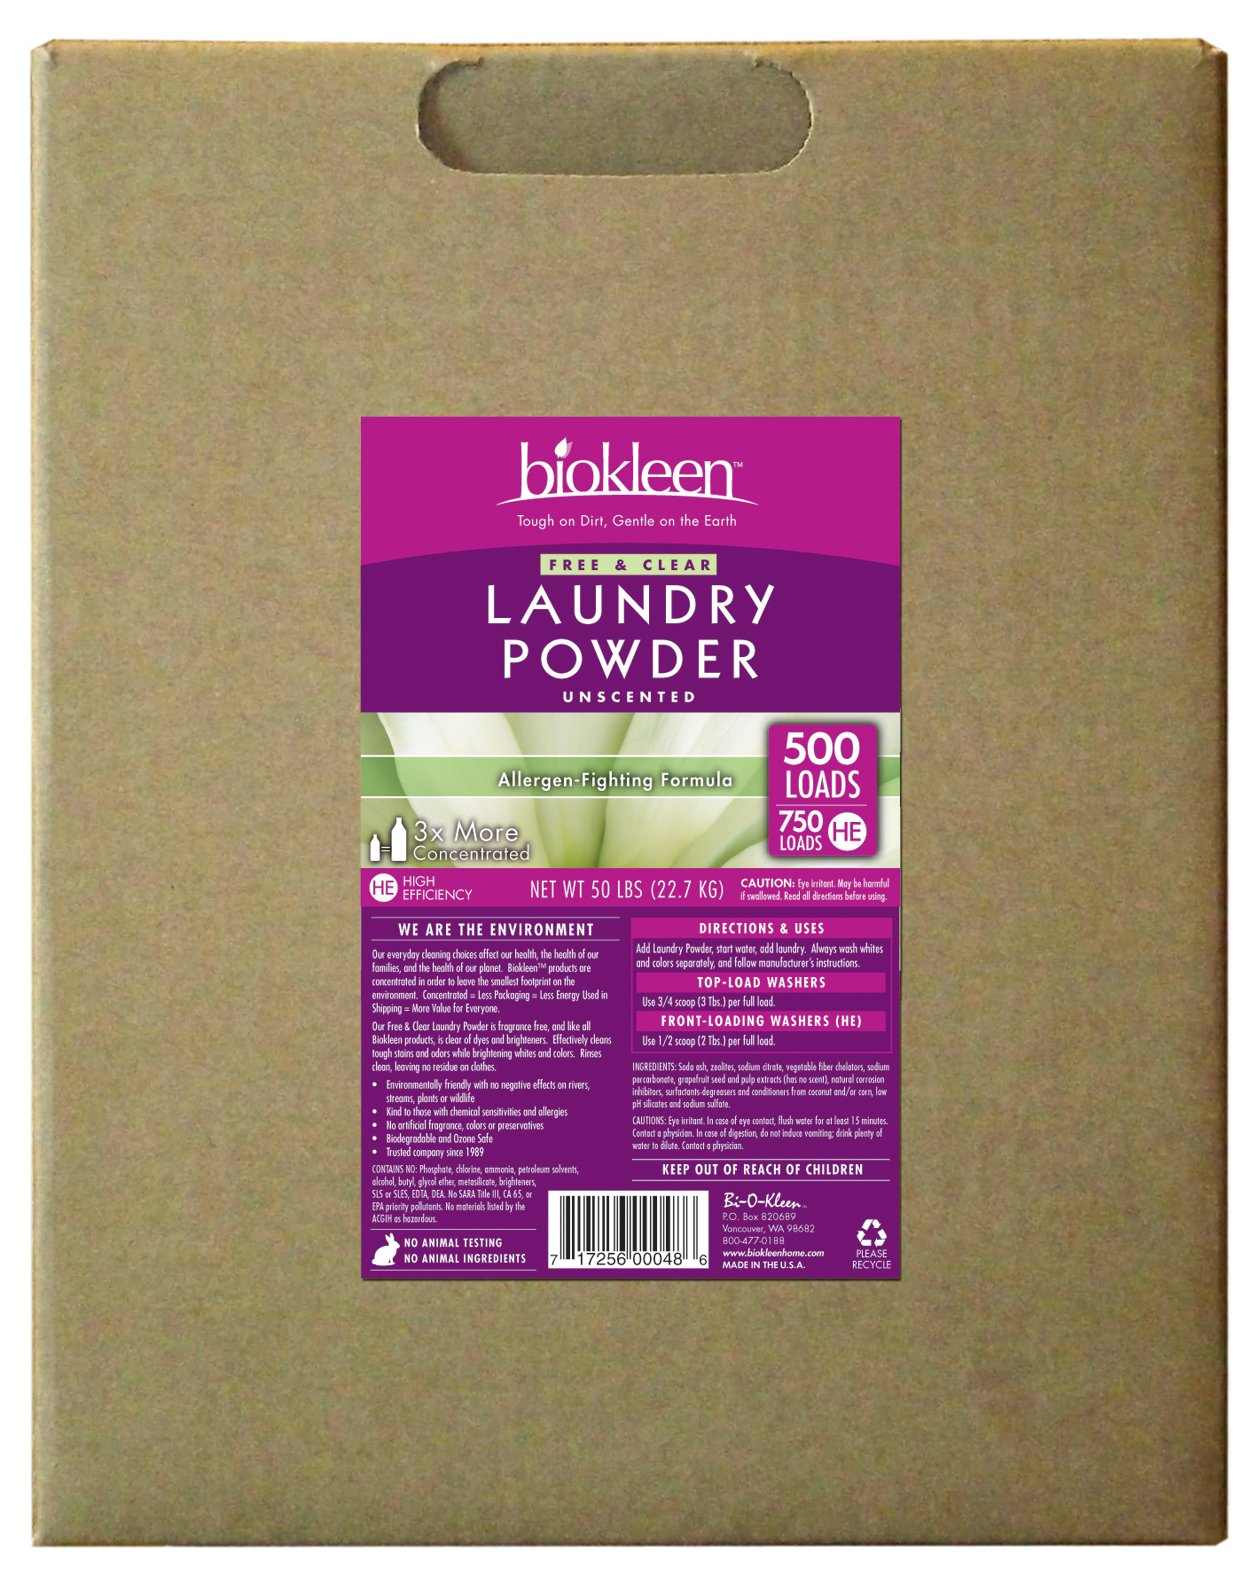 Biokleen 00048 Laundry Detergent Powder, Concentrated, Eco-Friendly, Non-Toxic, Plant-Based, No Artificial Fragrance, Colors or Preservatives, Free & Clear, Unscented, 50 Pounds- 750 HE Loads/500 Standard Loads by Biokleen